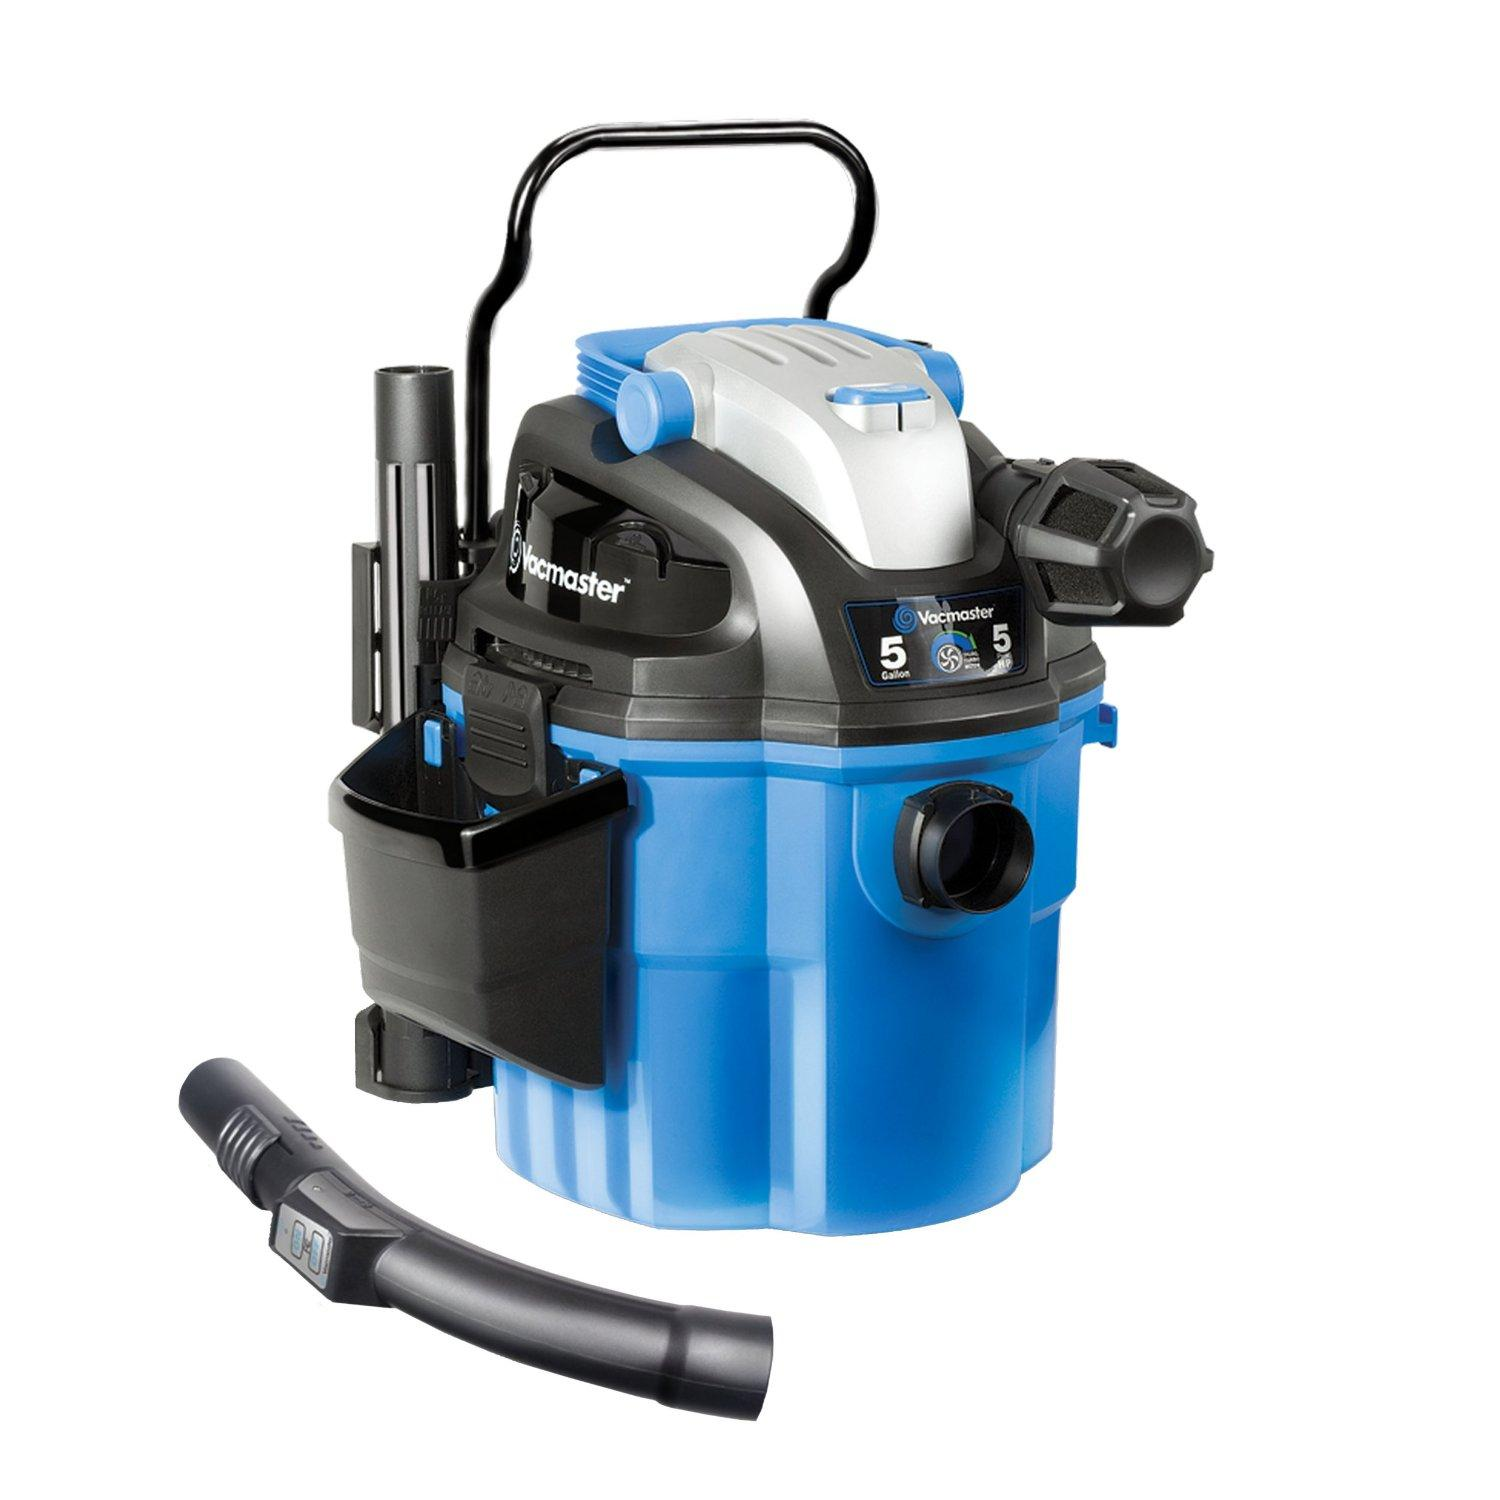 $79.99 Vacmaster VWM510 5-gal. Wall Mount / Portable Wet/Dry Vac with 2-Stage Motor